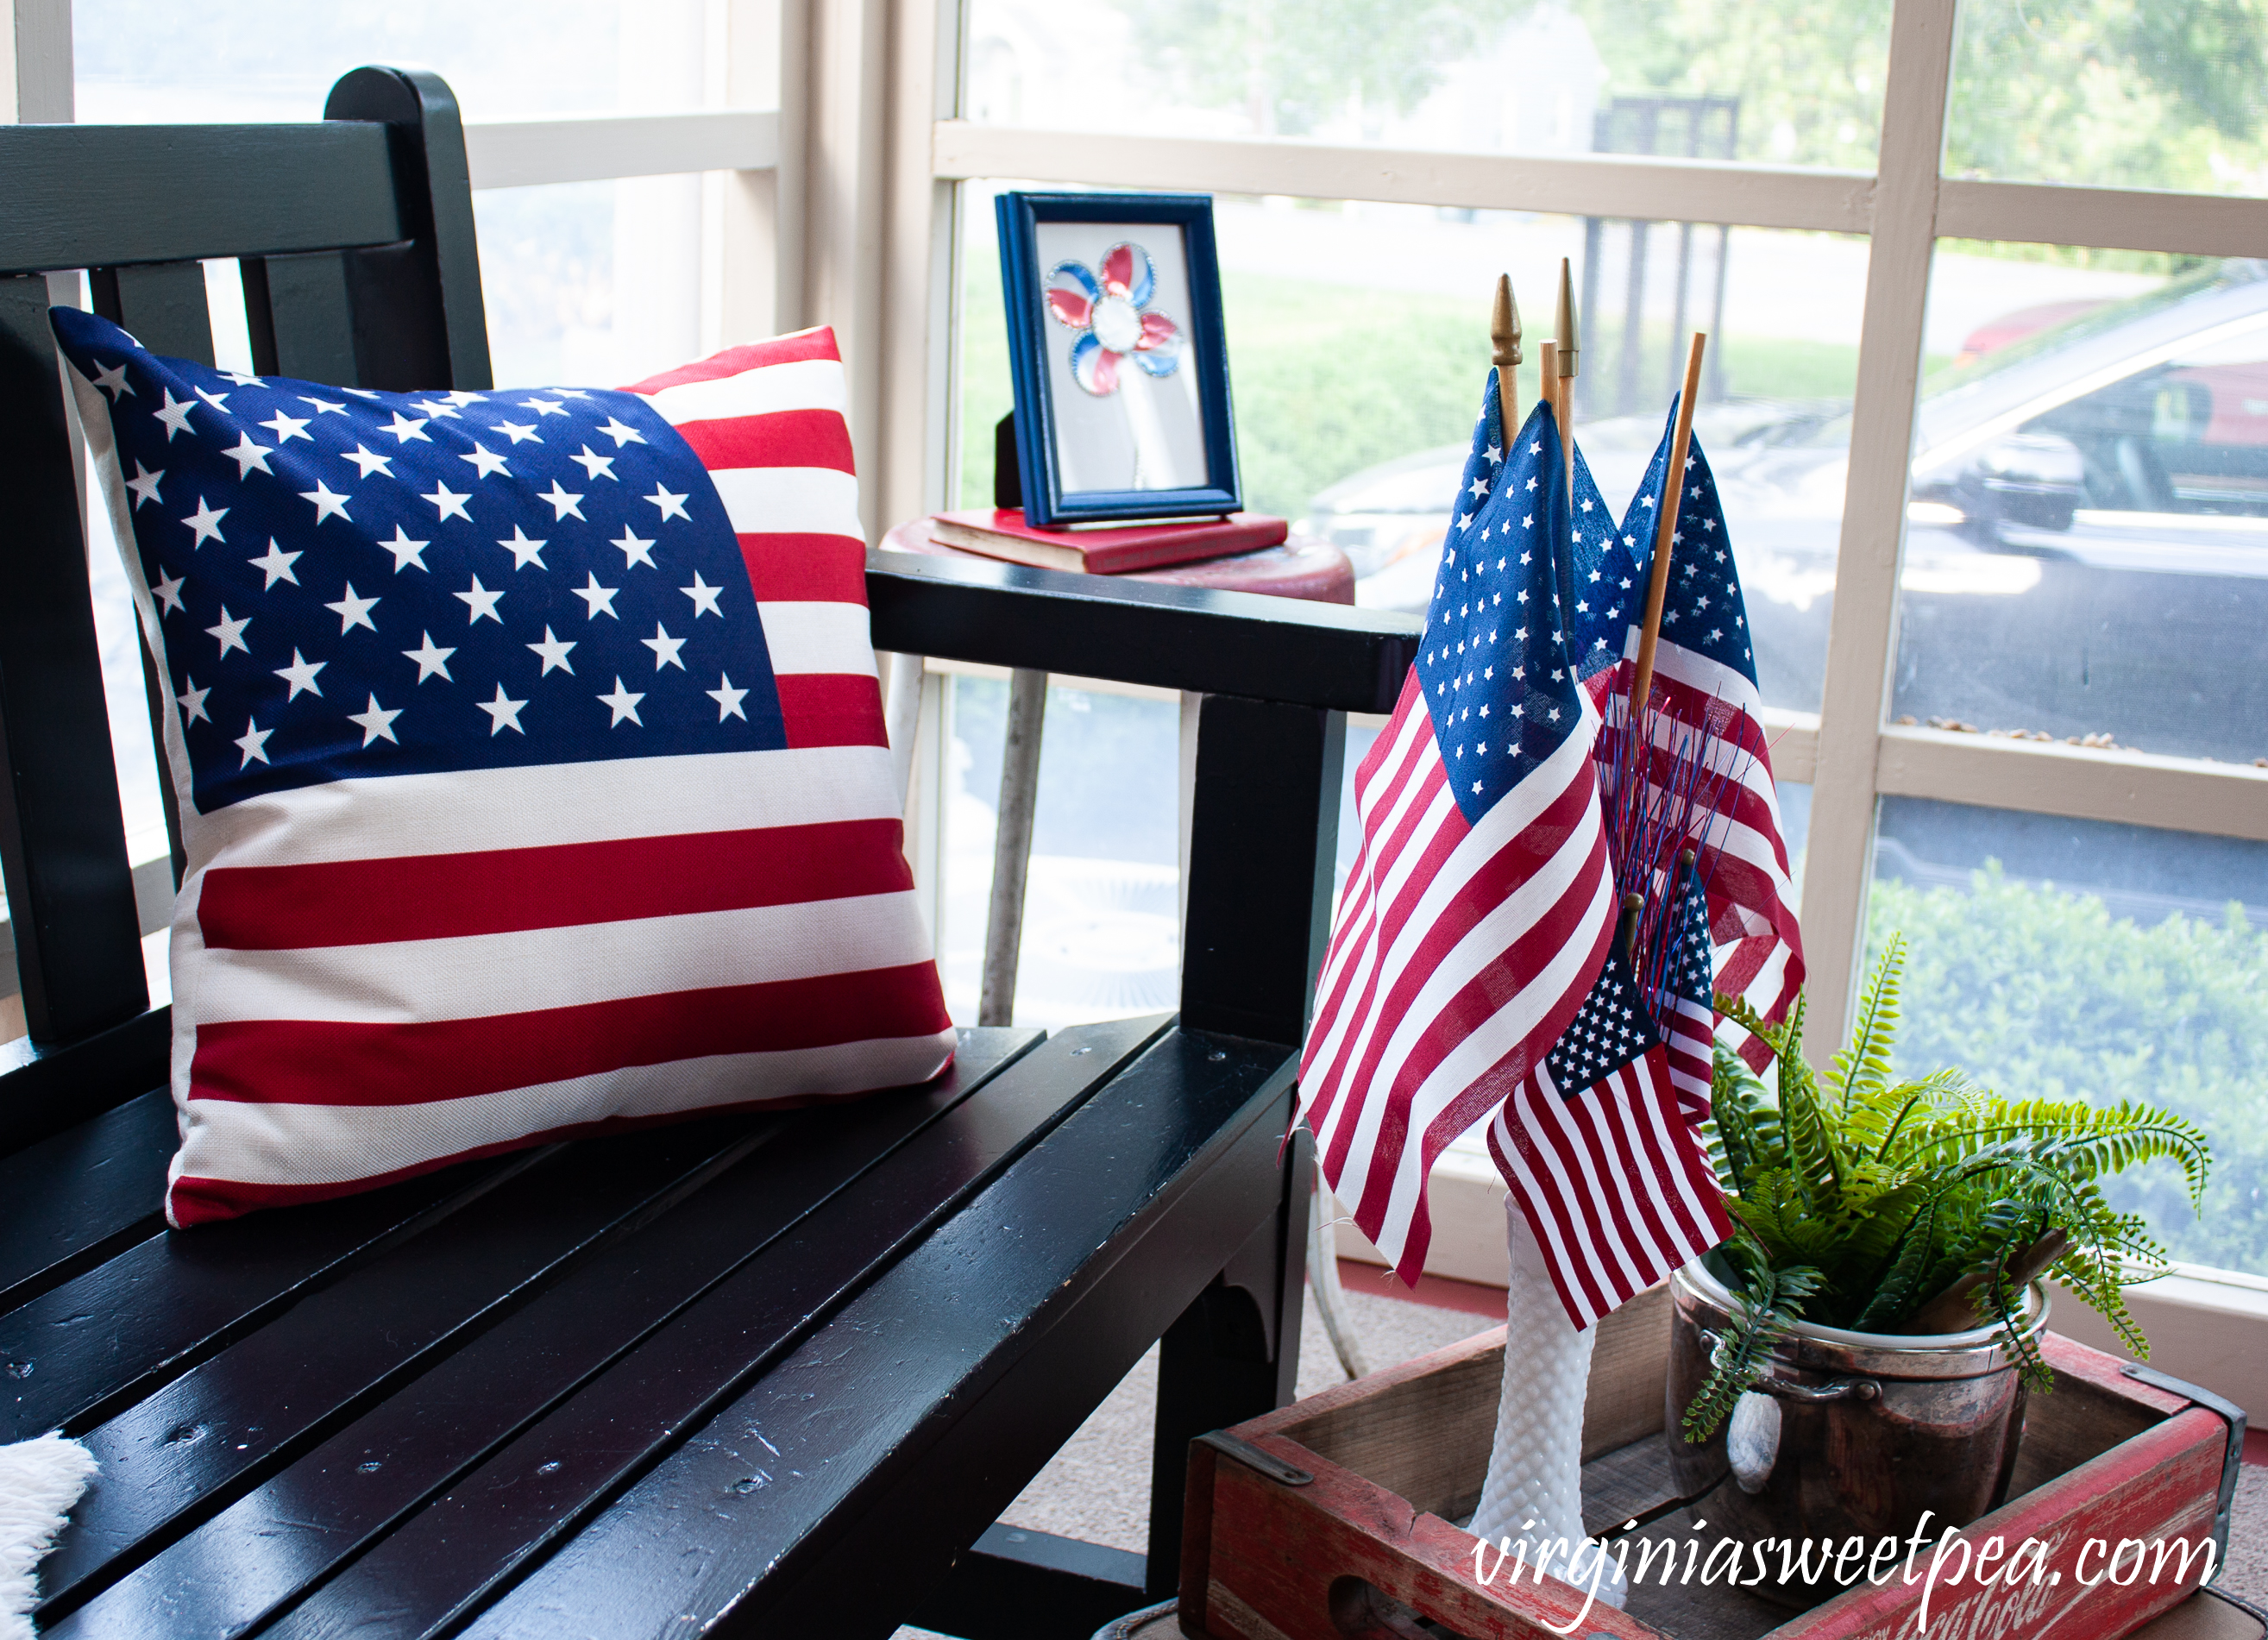 American flag pillow, American flags displayed in a milk glass, vase, adn a Coke crate